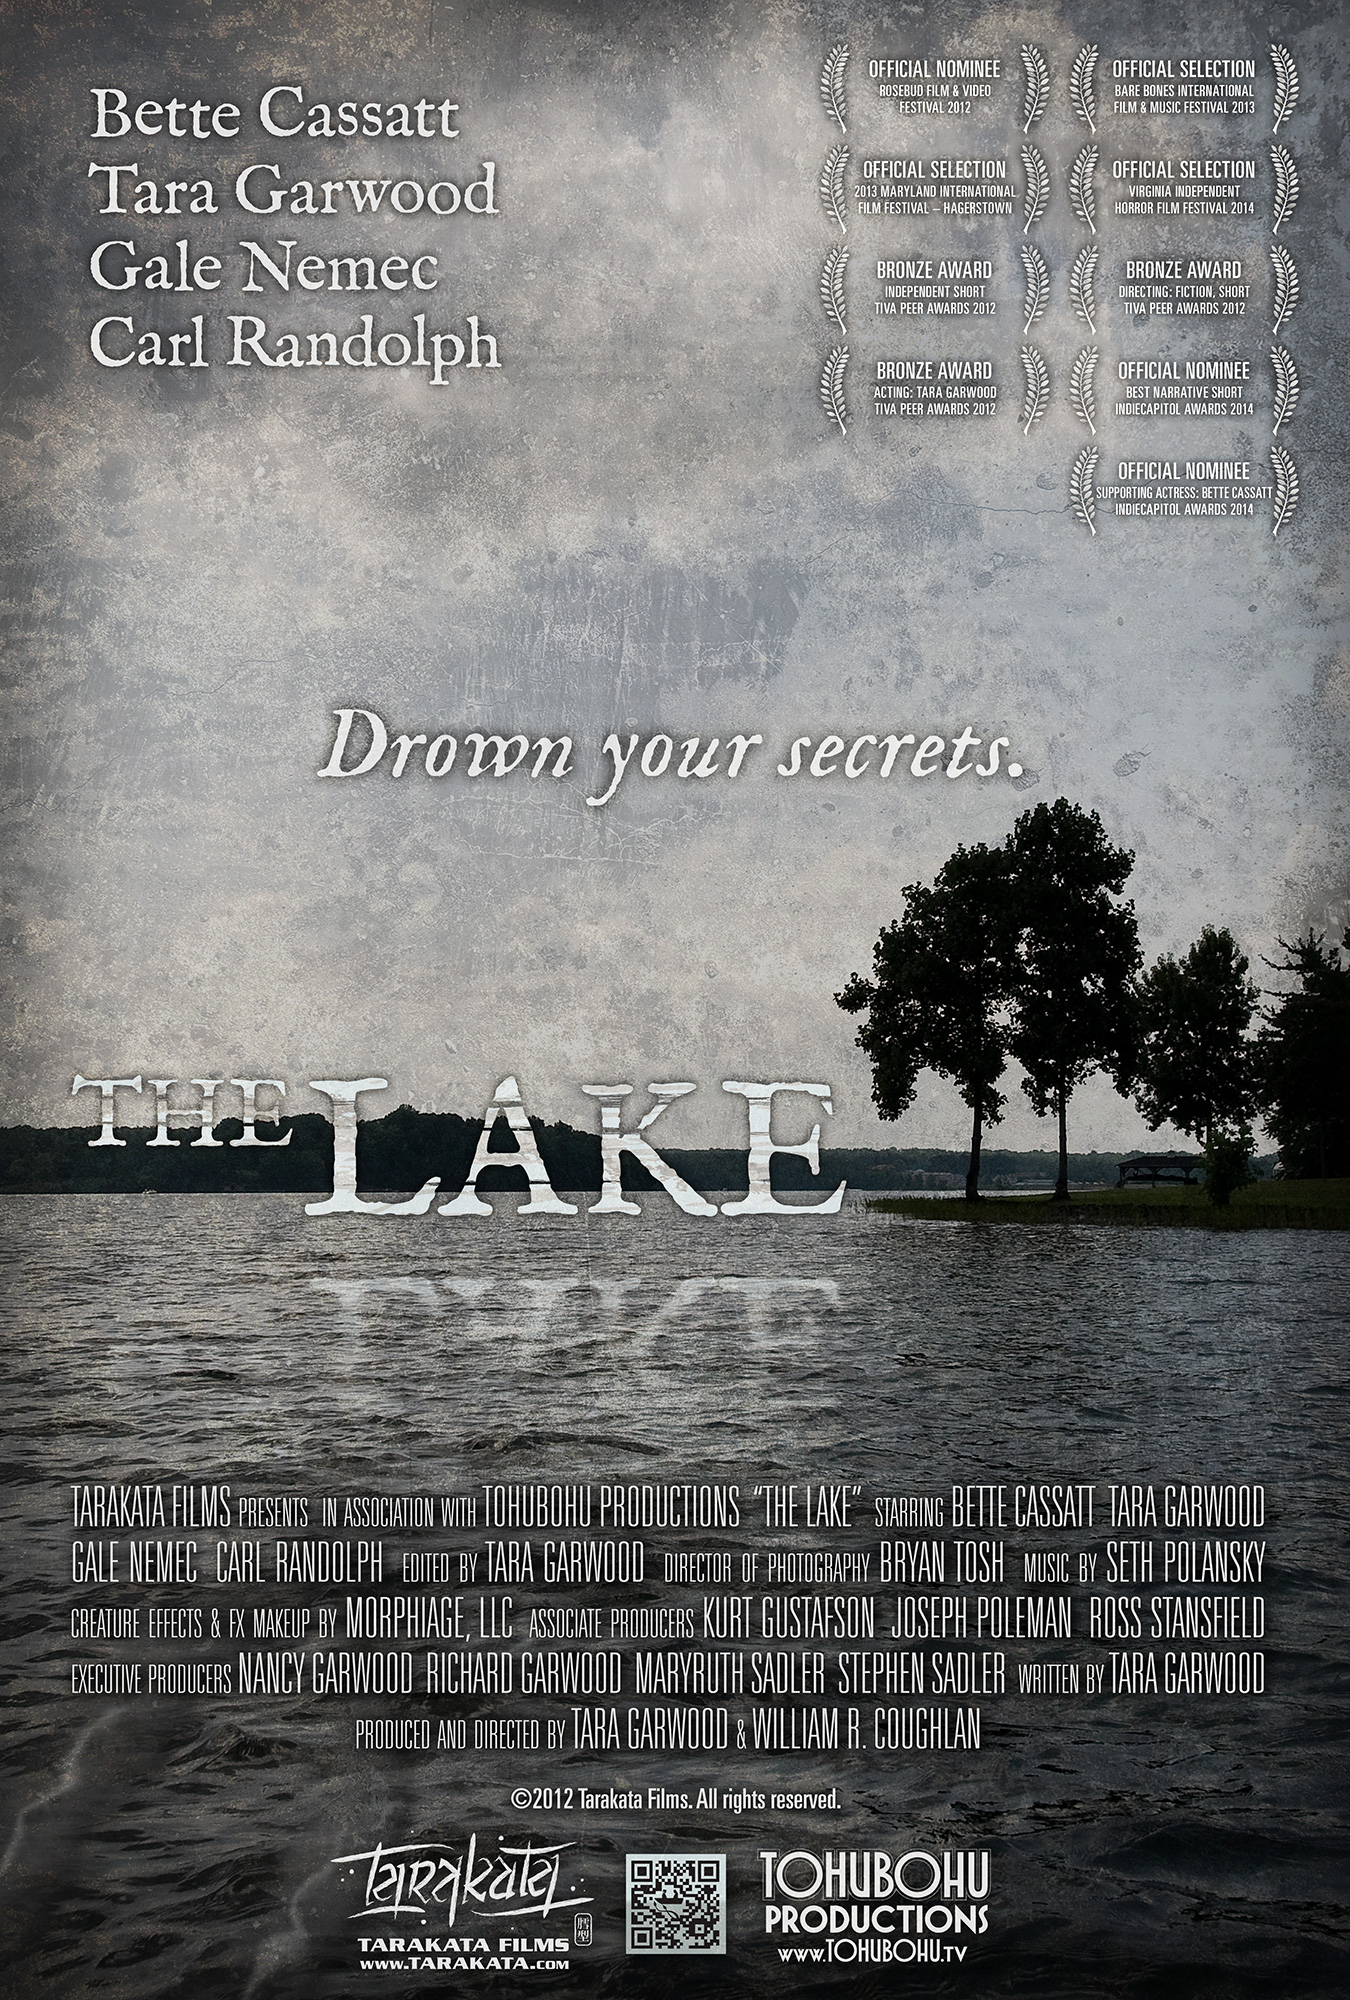 The Lake - 2012 · 11:14 · written by Tara Garwood · produced and directed by Tara Garwood & William R. CoughlanA Tarakata Films production in association with Tohubohu ProductionsThe Lake tells the story of two sisters, each dealing in her own way with the childhood loss of their father. Claire still lives at home with Mom and spends her days on the lake in their father's old rowboat. Laney has built her own life in the city, but when she comes back to visit, the sisters' discoveries will dredge up the past and the secrets that bind this family together may just tear them apart.